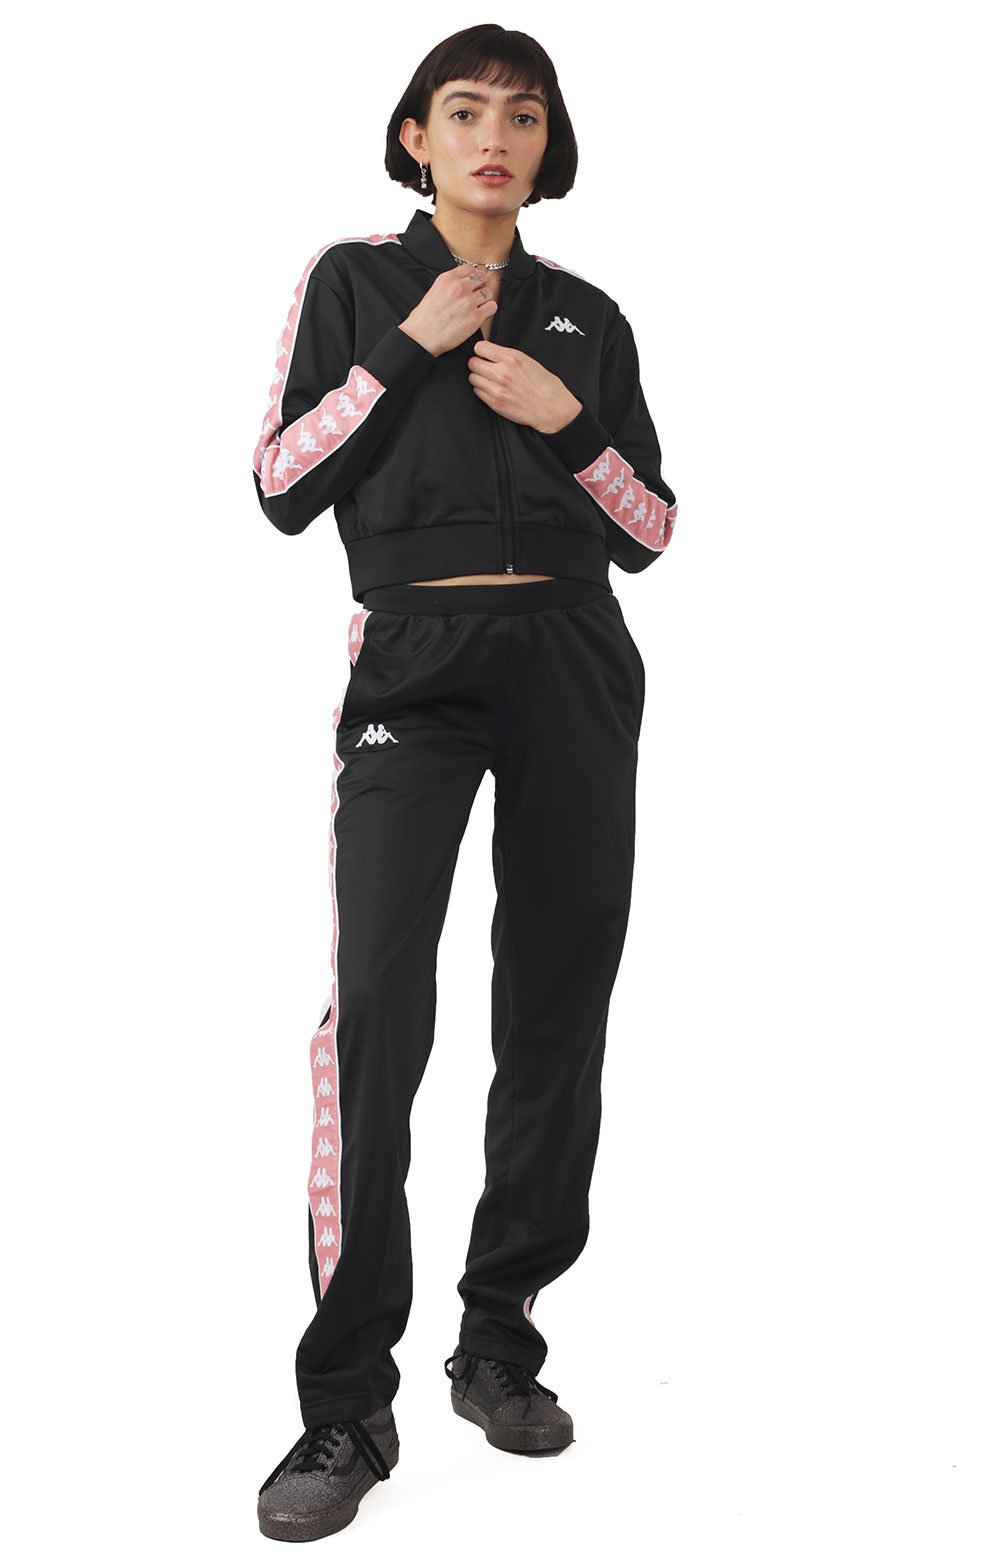 222 Banda Wastoria Pants - Black/White/Pink